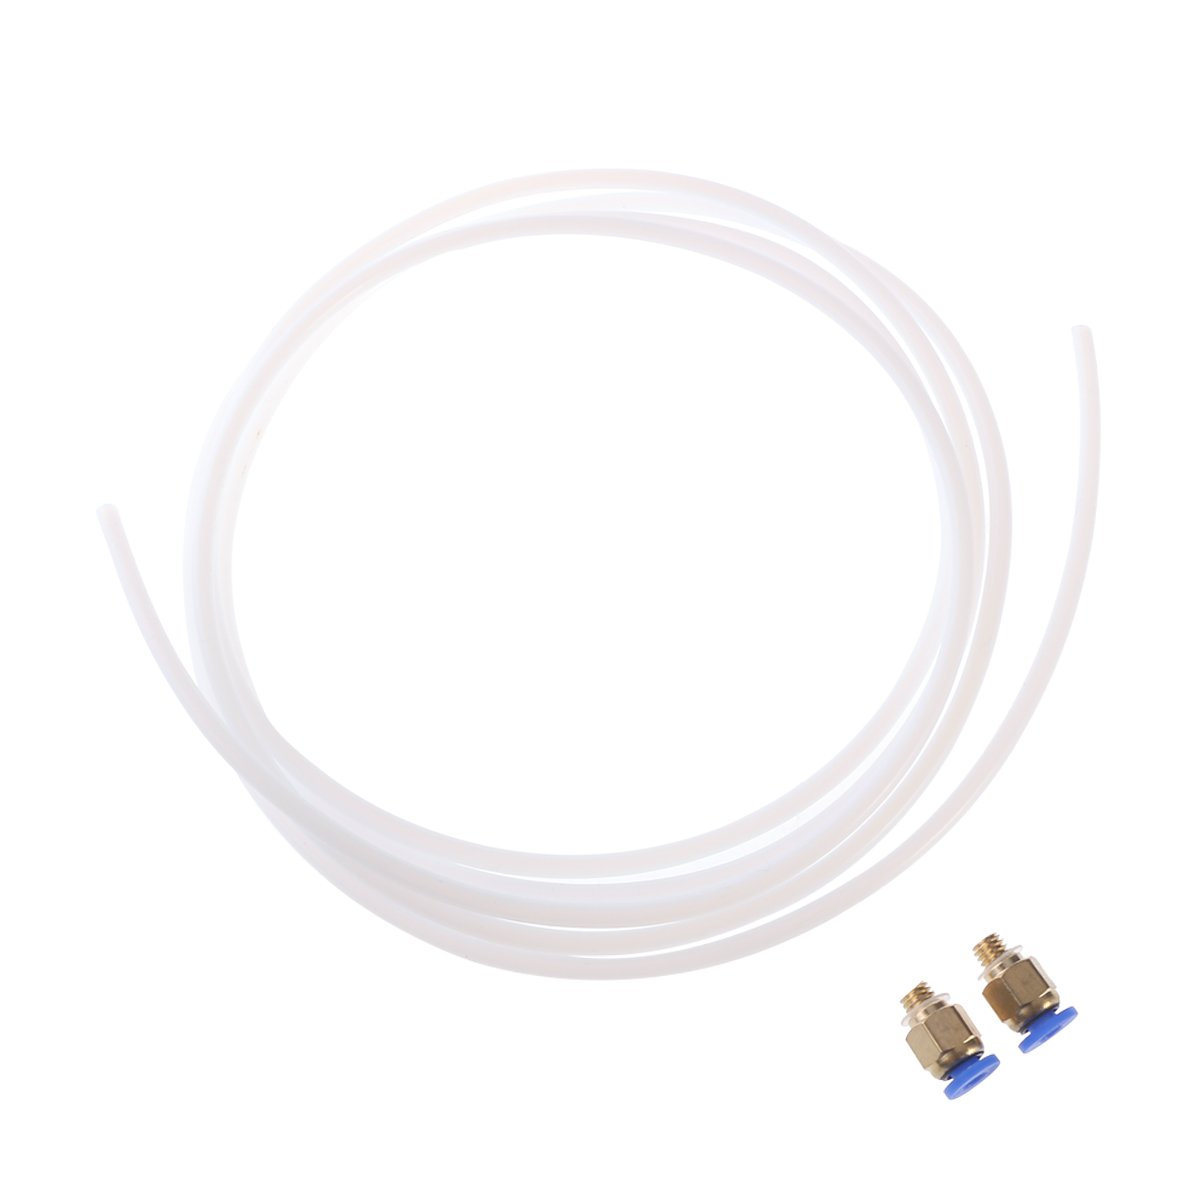 UEETEK 2 Meters PTFE Teflon Tube and 2 Pieces Connectors for RepRap Rostock Kossel 3D Printer Bowden Hotend 1.75mm